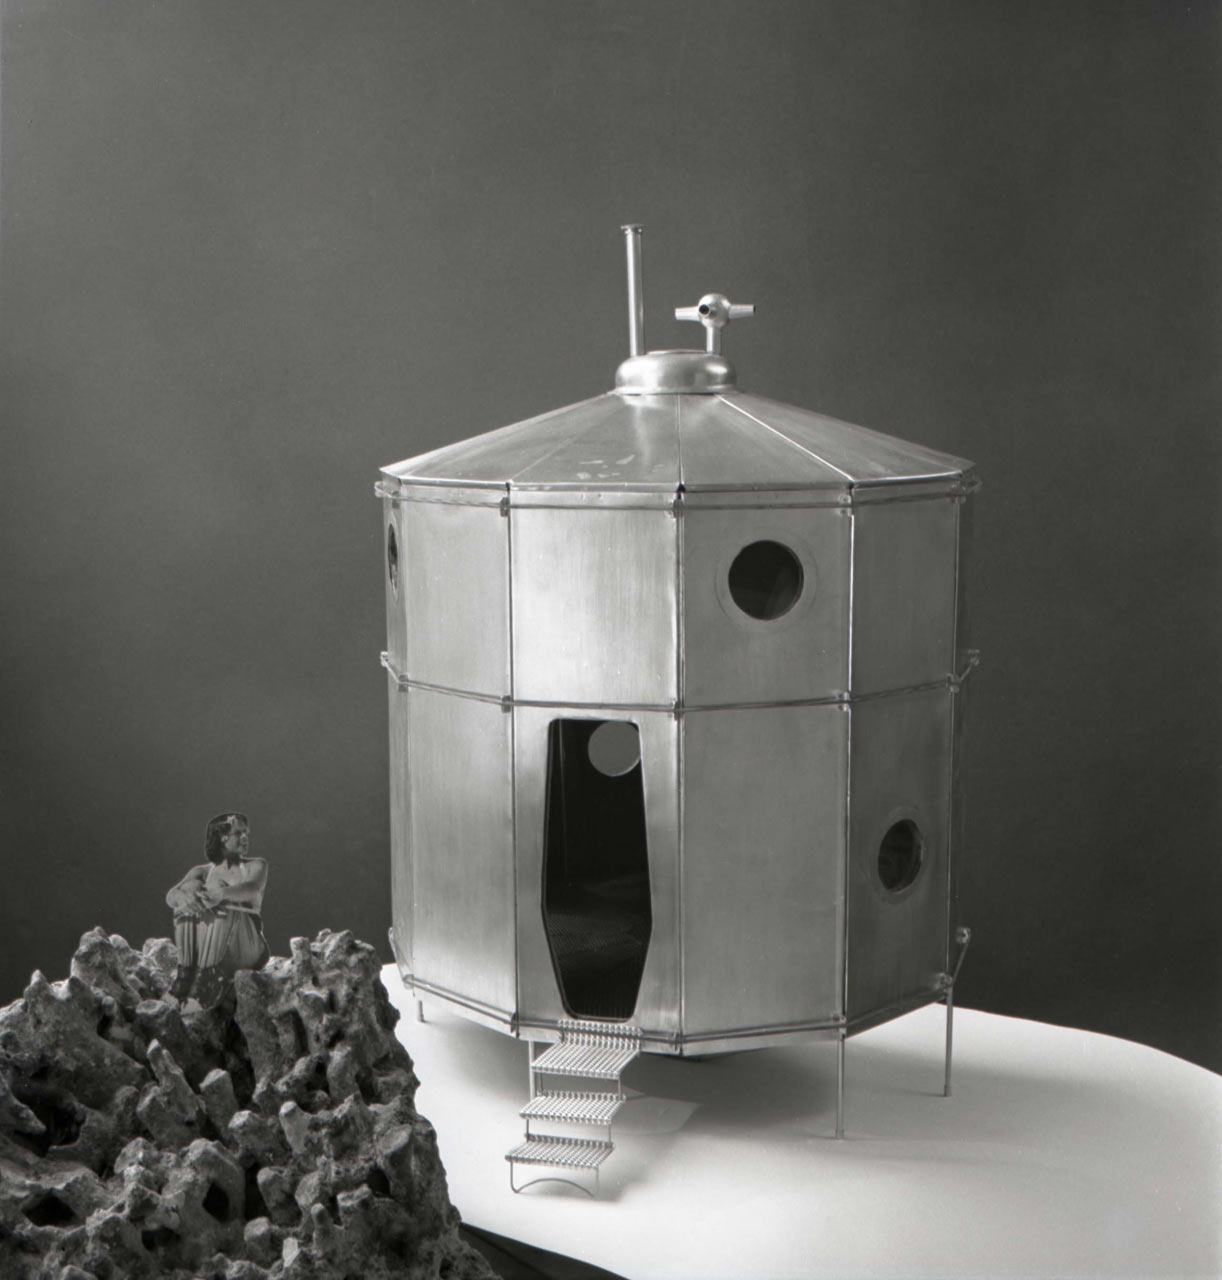 Refuge model, 1938. Copyright Archives Charlotte Perriand, ADAGP 2012.